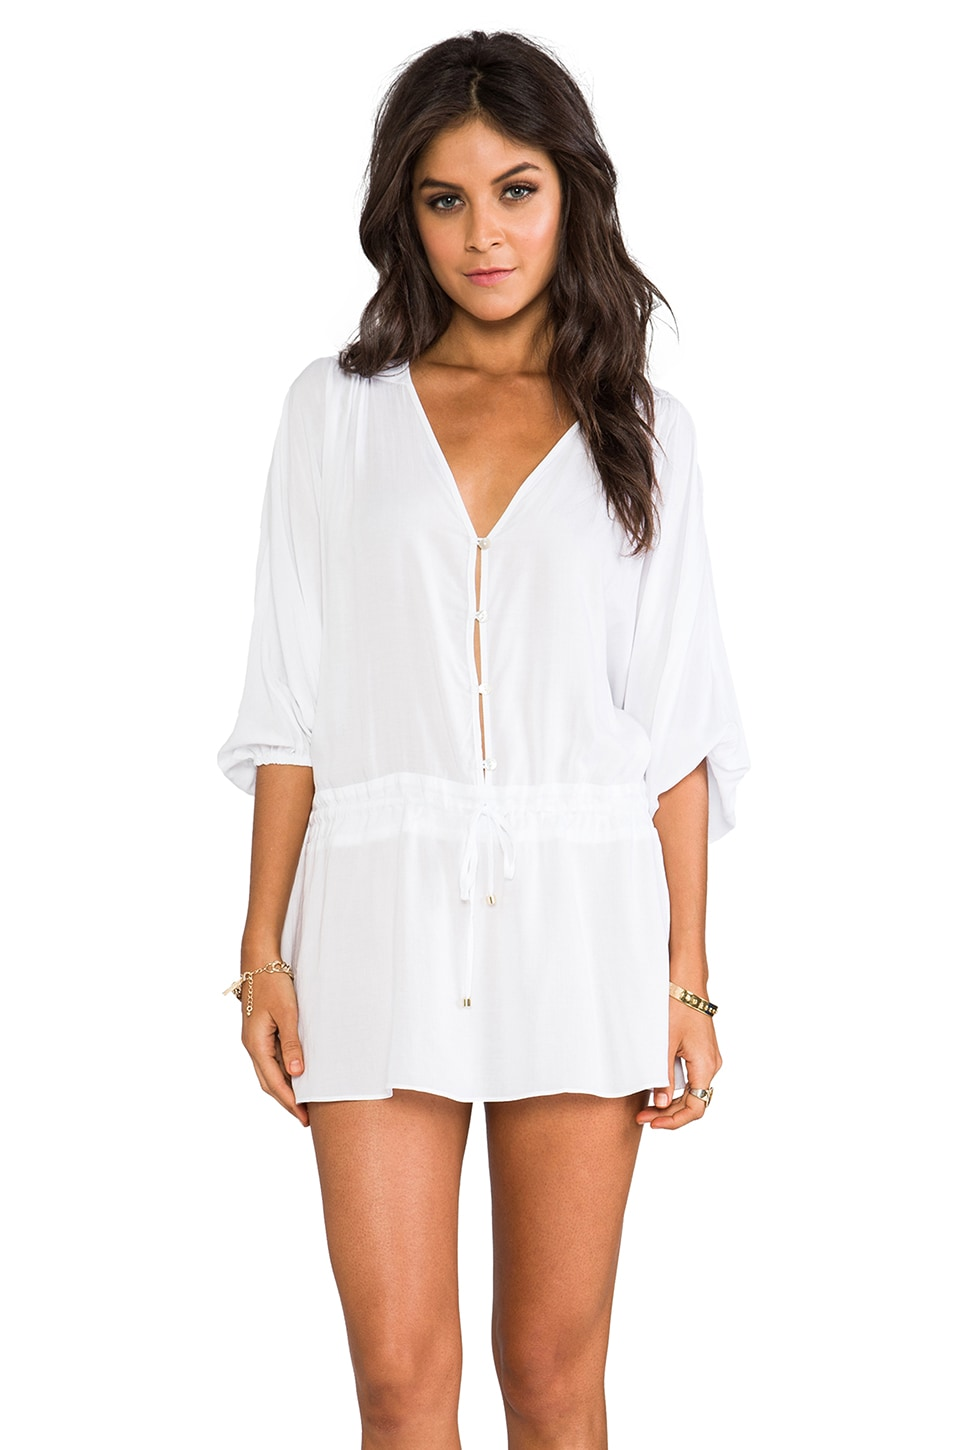 Vix Swimwear Adriana Caftan in Solid White